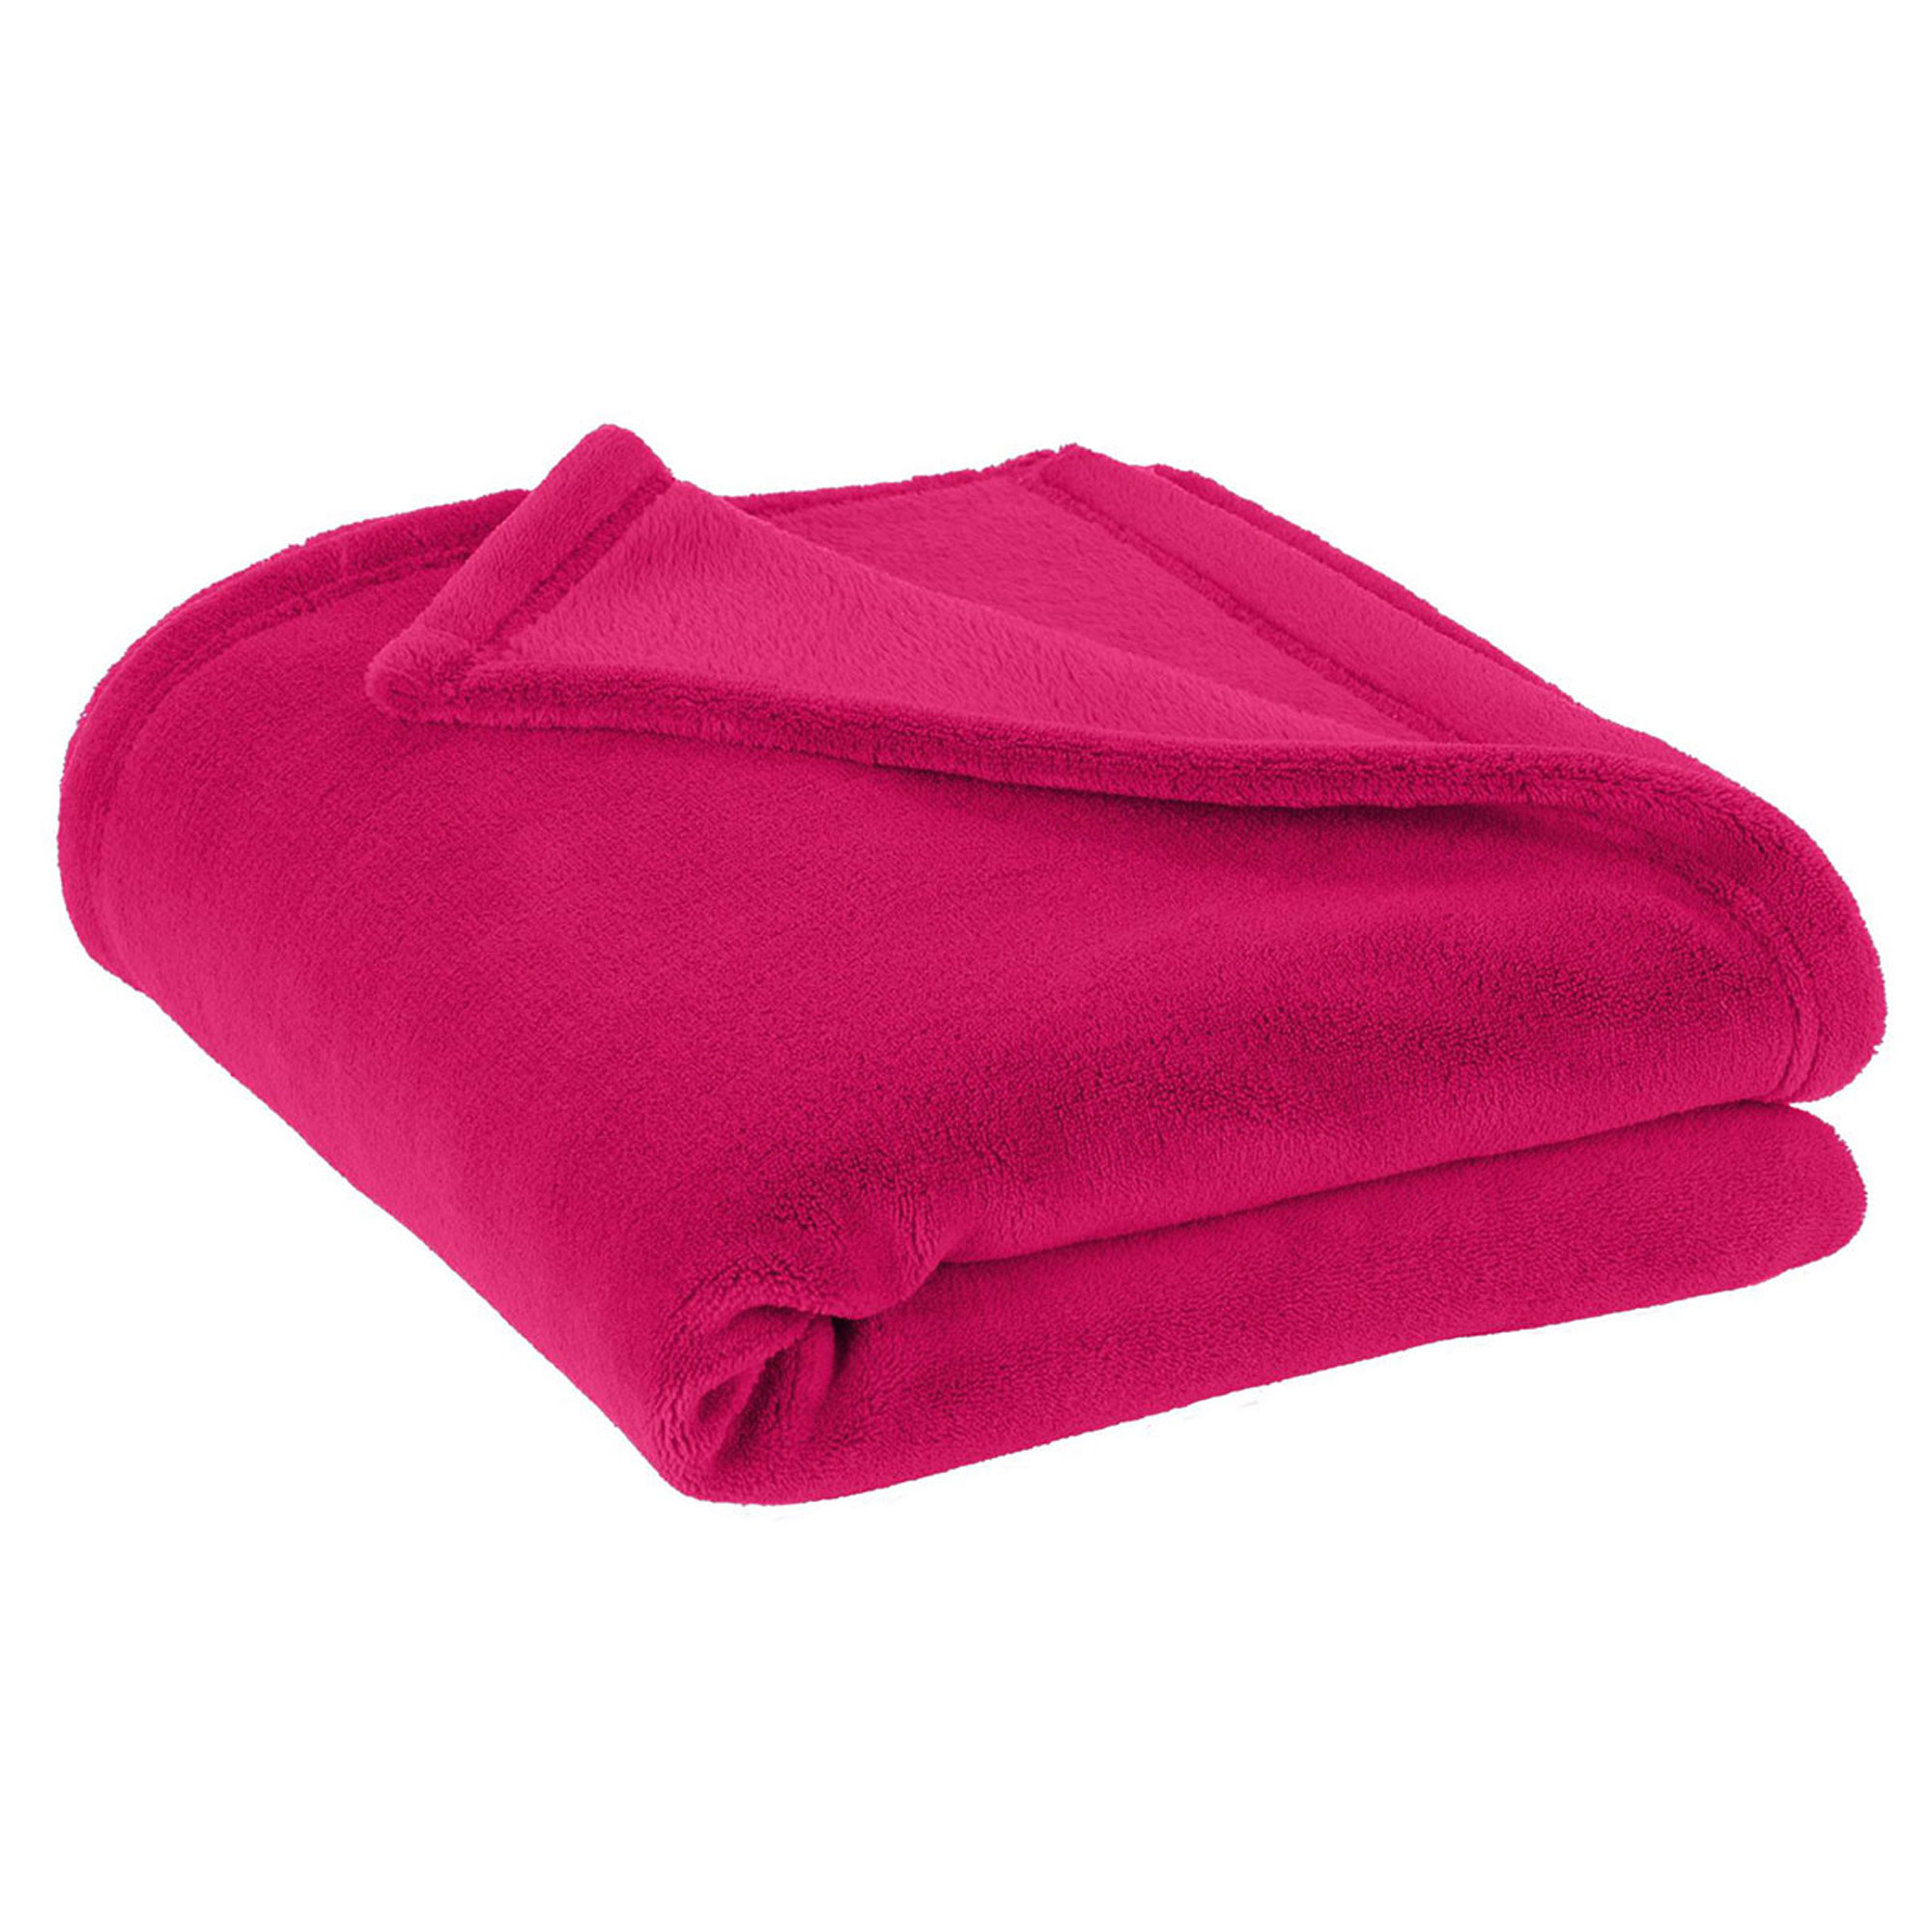 Port Authority Super Lightweight Soft Polyester Plush Blanket